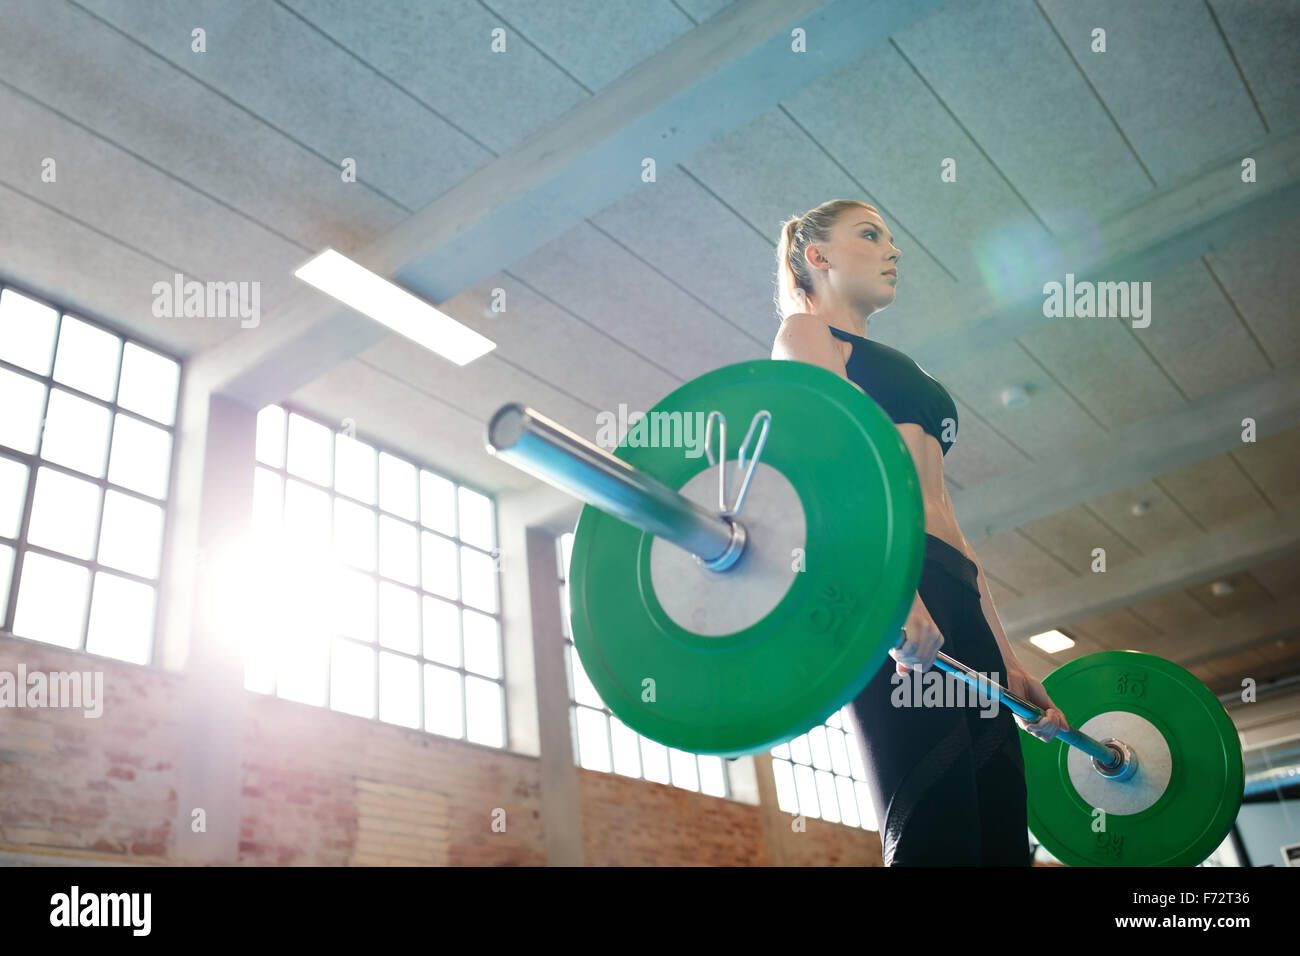 Fitness woman preparing to practice deadlift with heavy weights in gym. Female doing heavy weight lifting work out - Stock Image